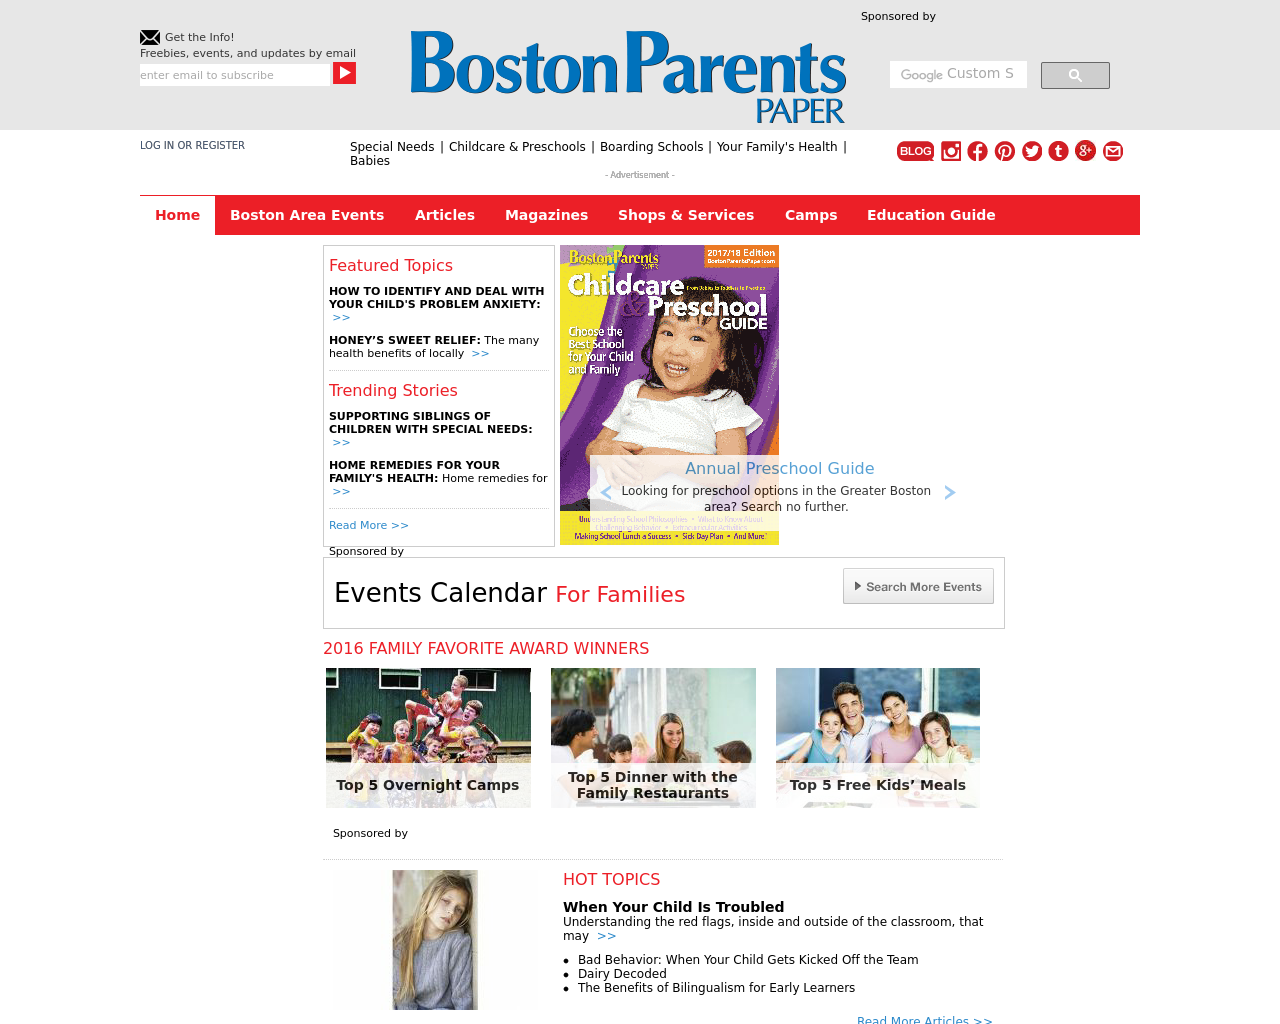 Boston-Parents-Paper-Advertising-Reviews-Pricing